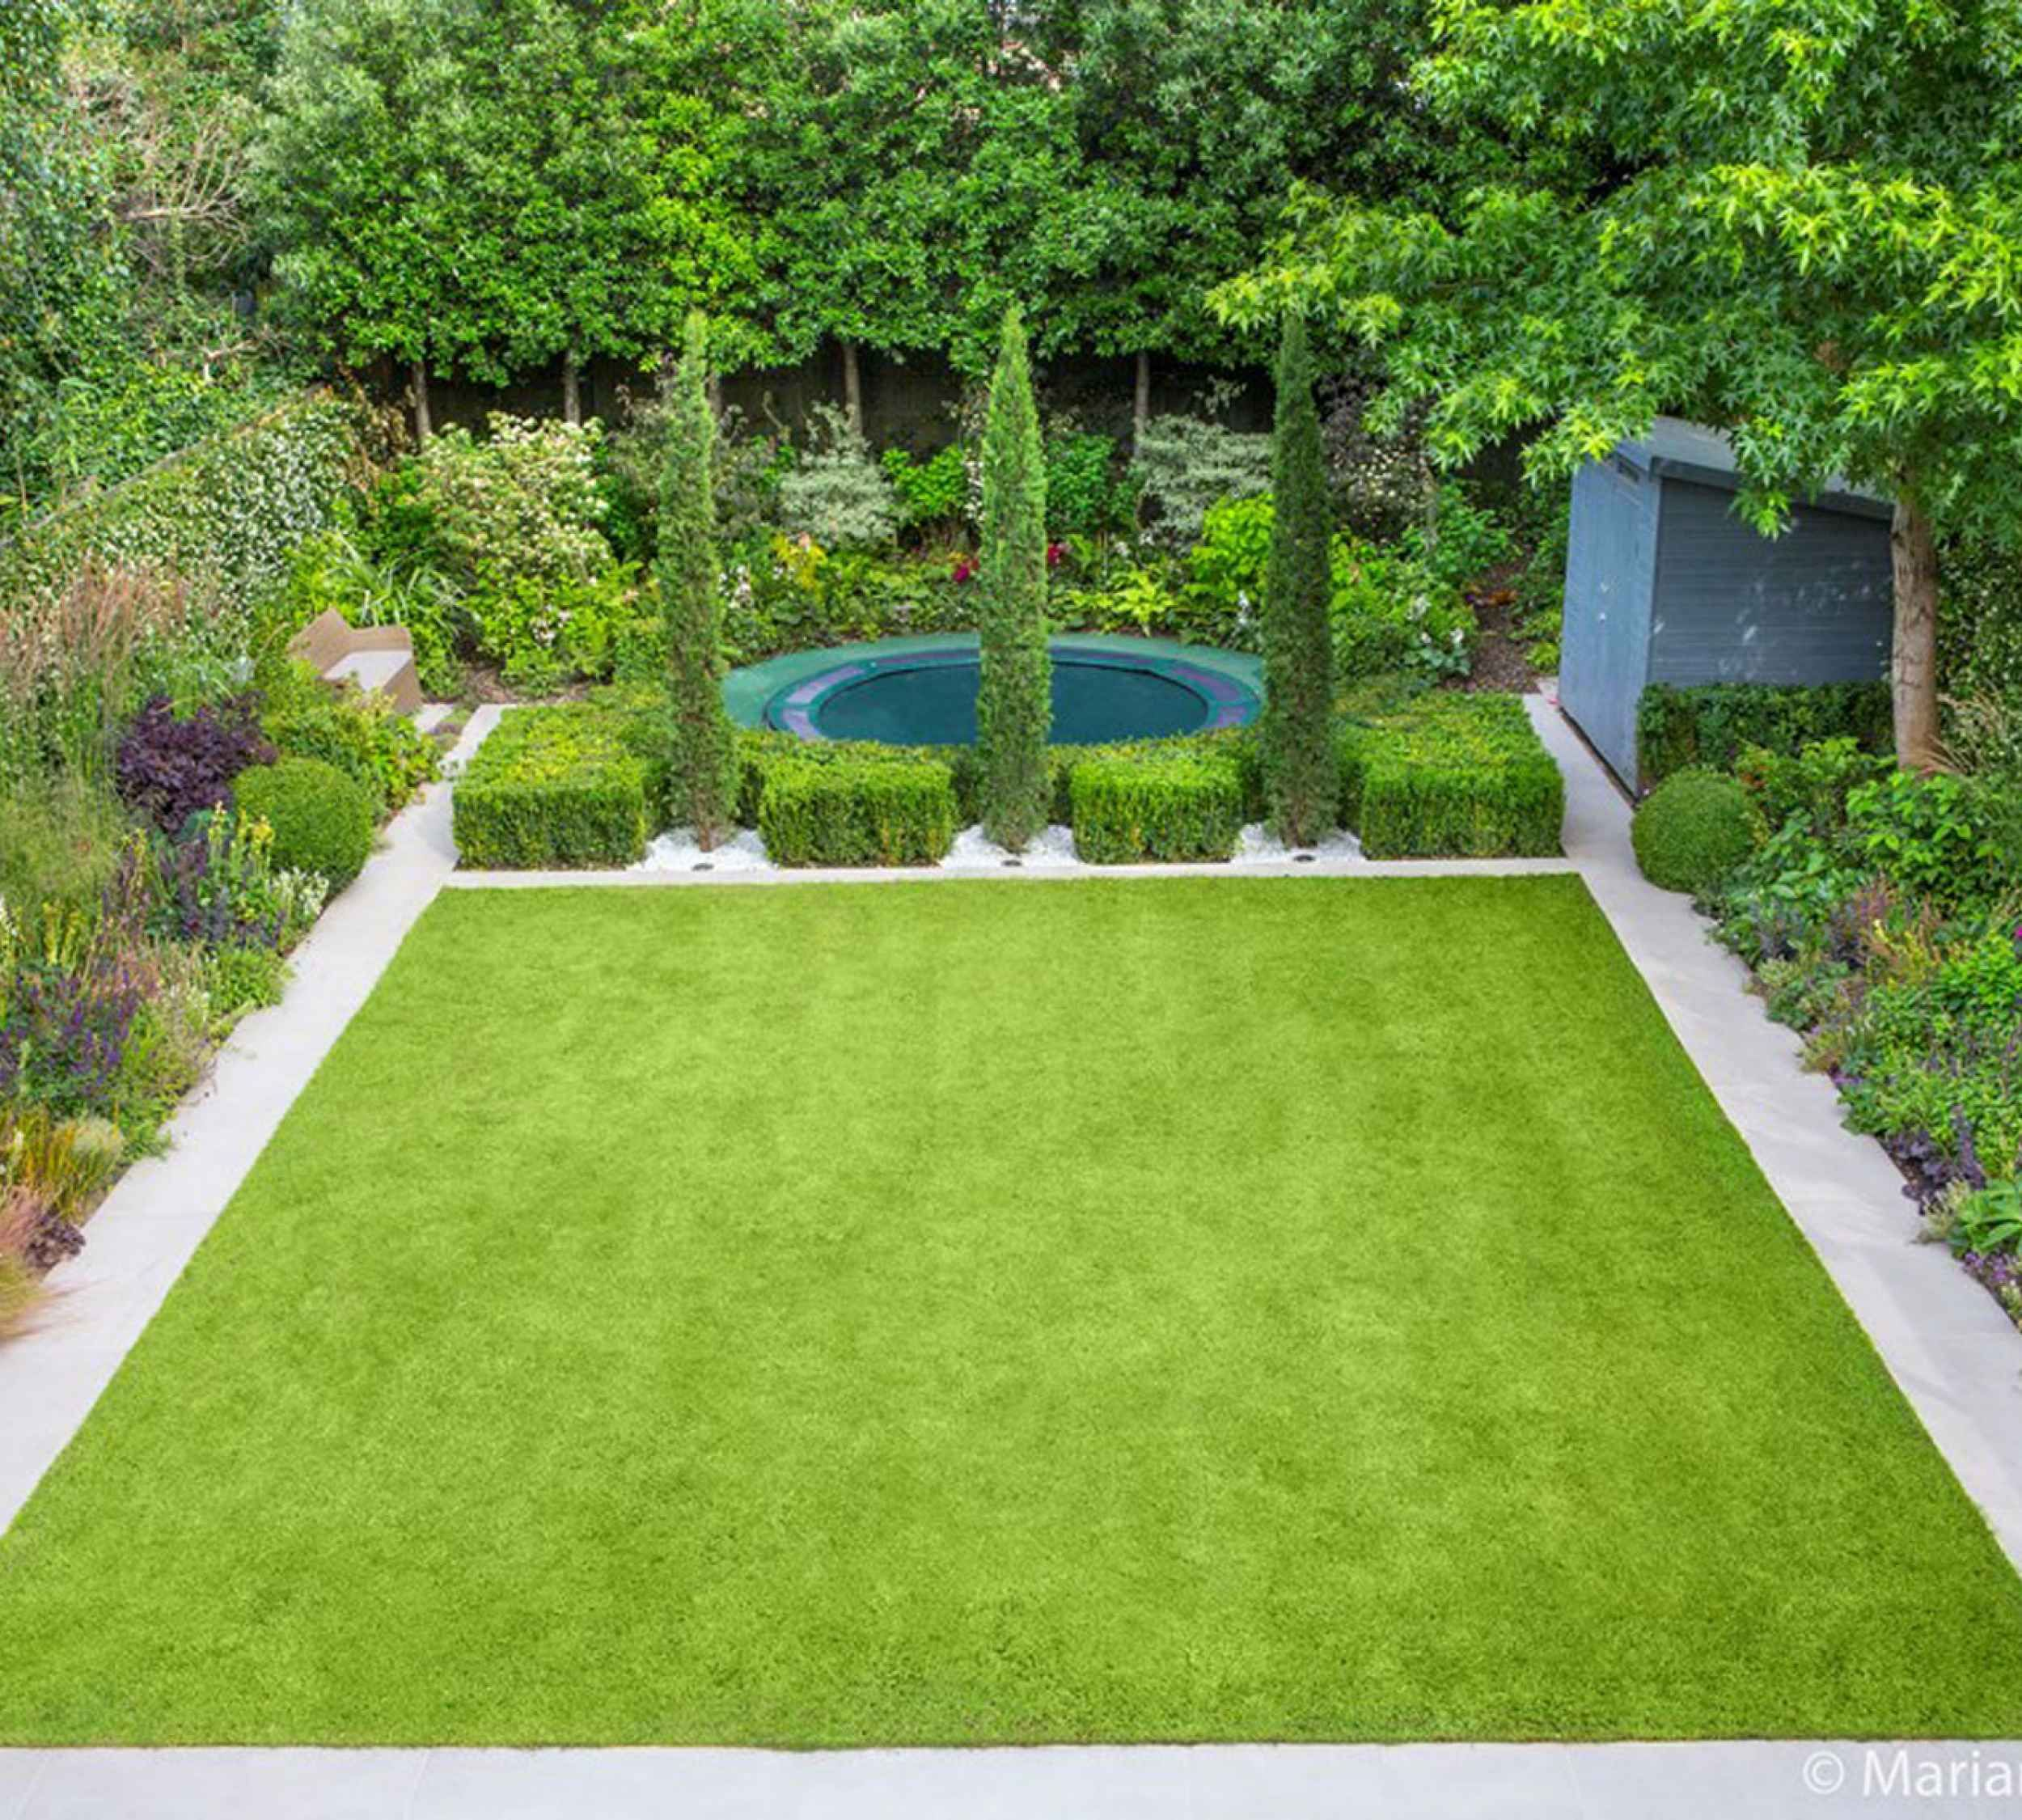 Wandsworth - Garden Design & Landscaping Project ...